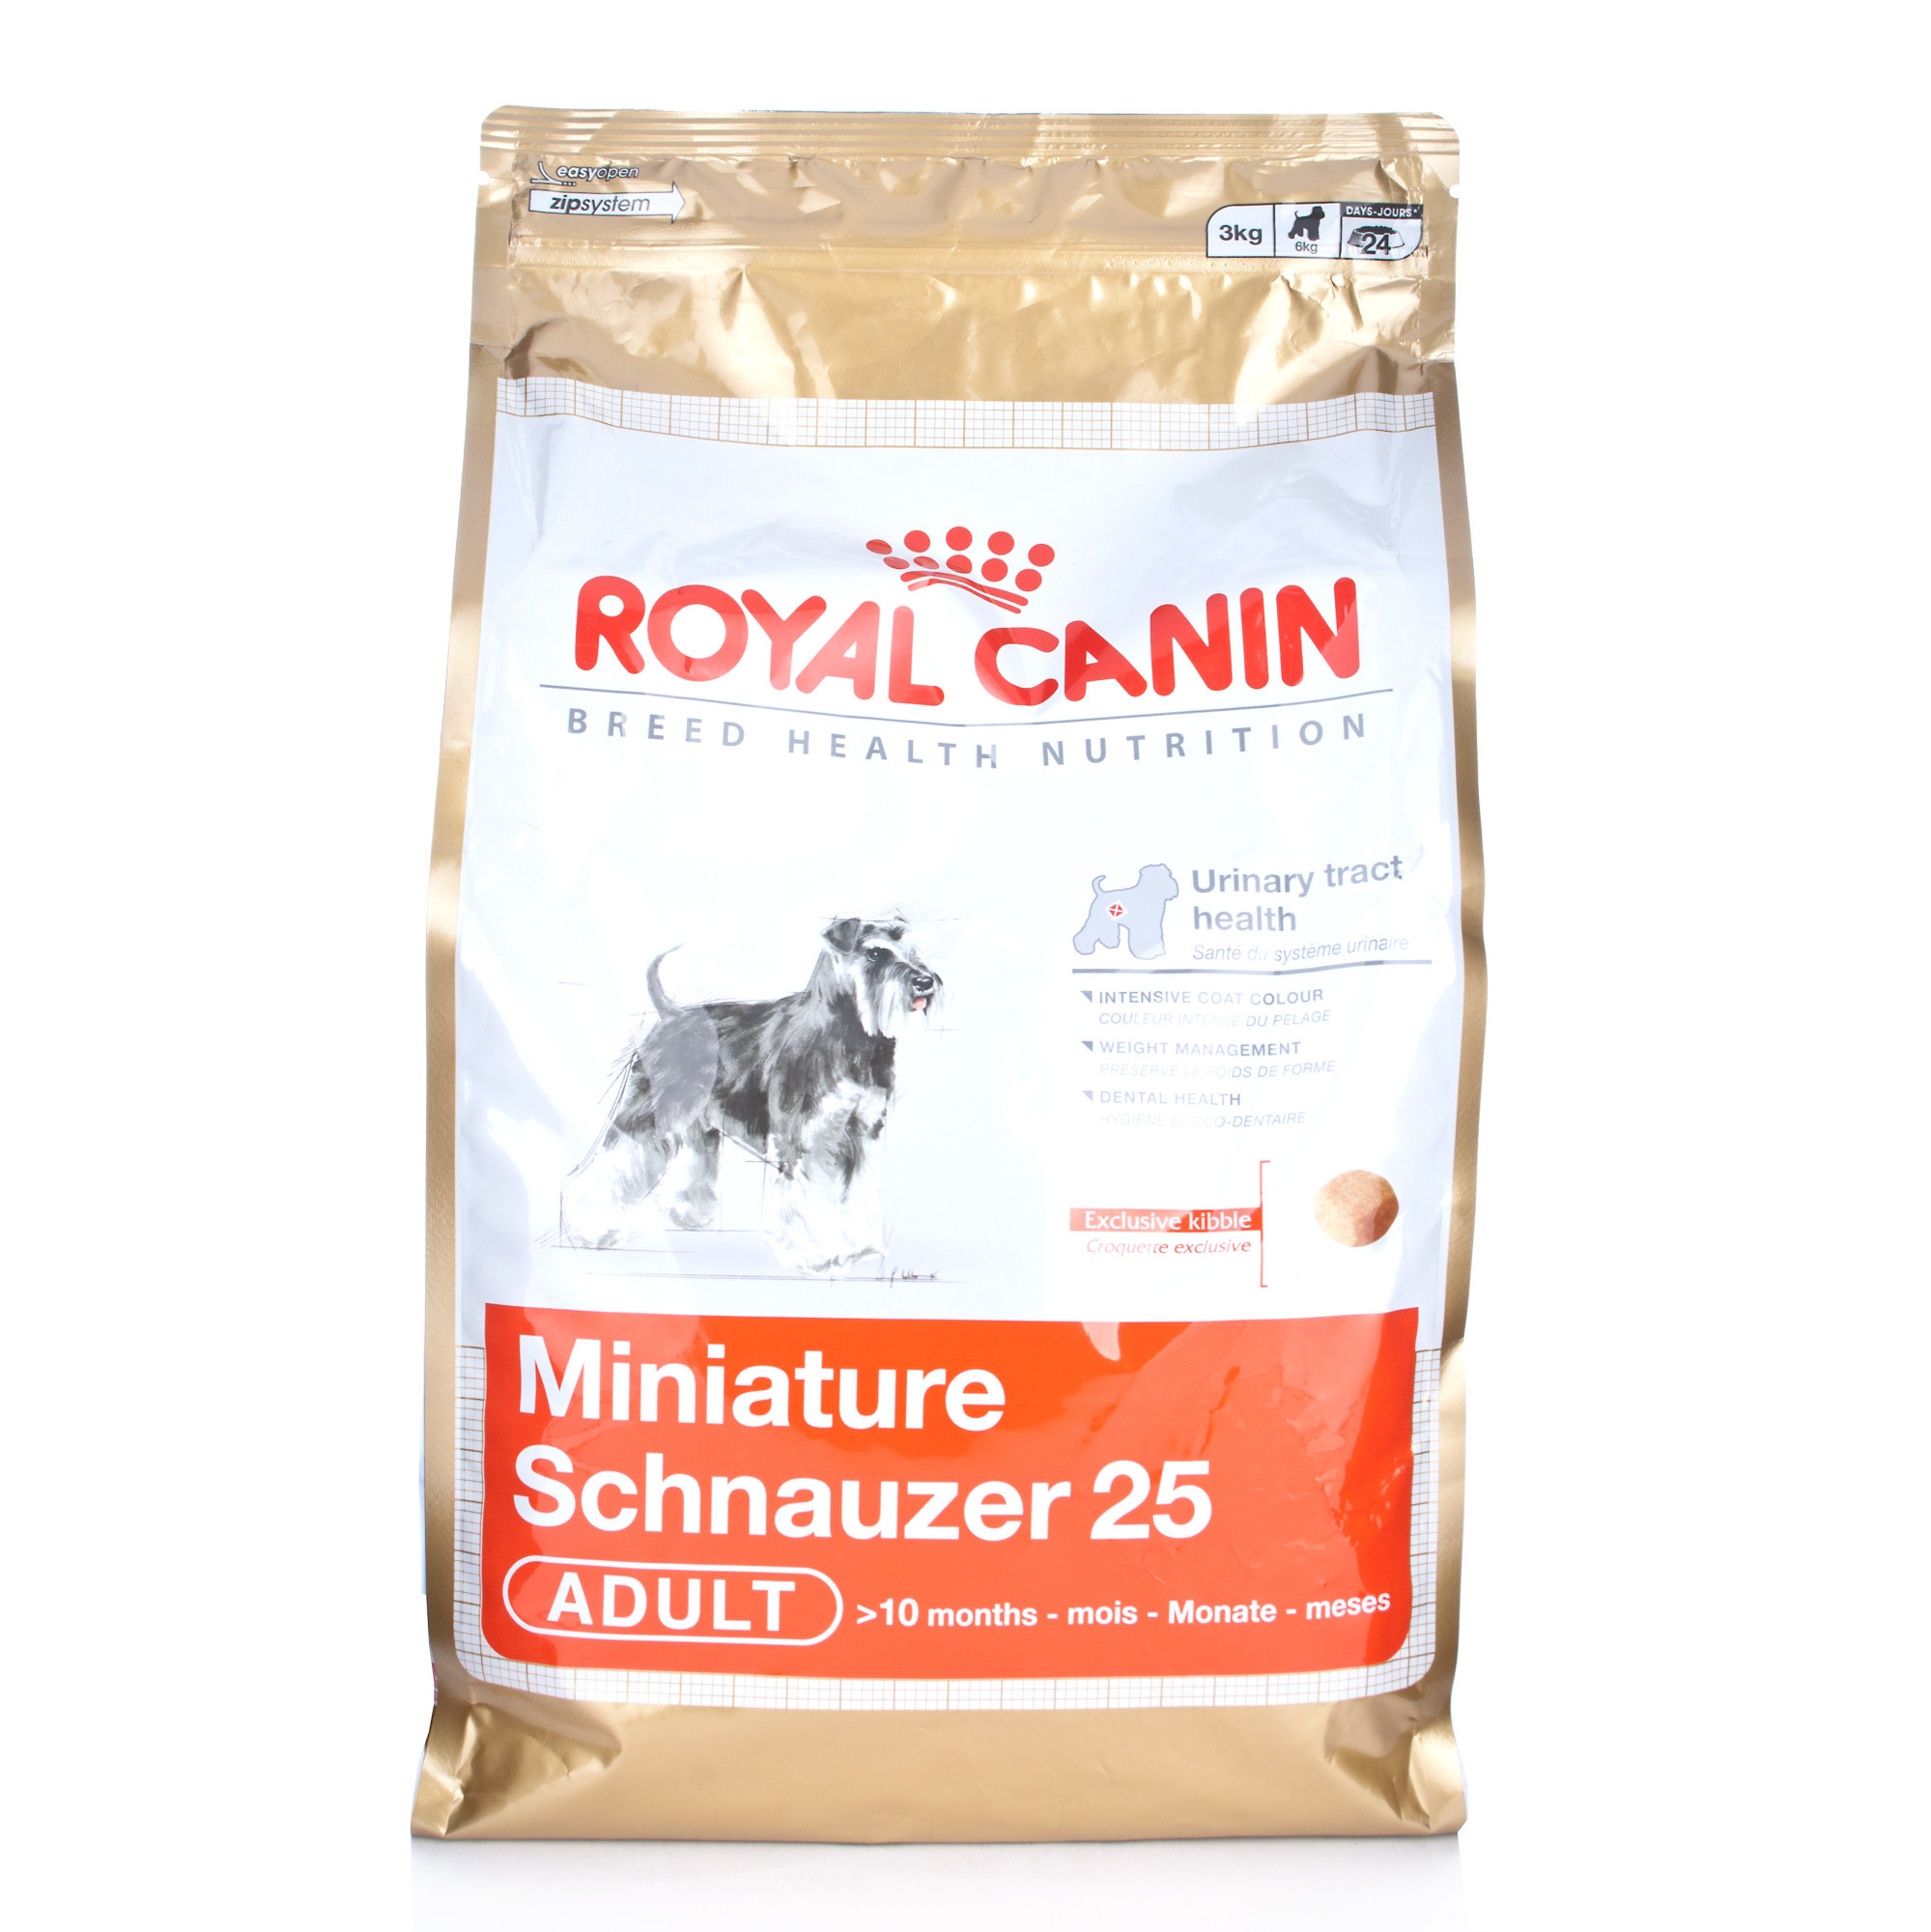 Royal Canin Miniature Schnauzer Puppy Food Review